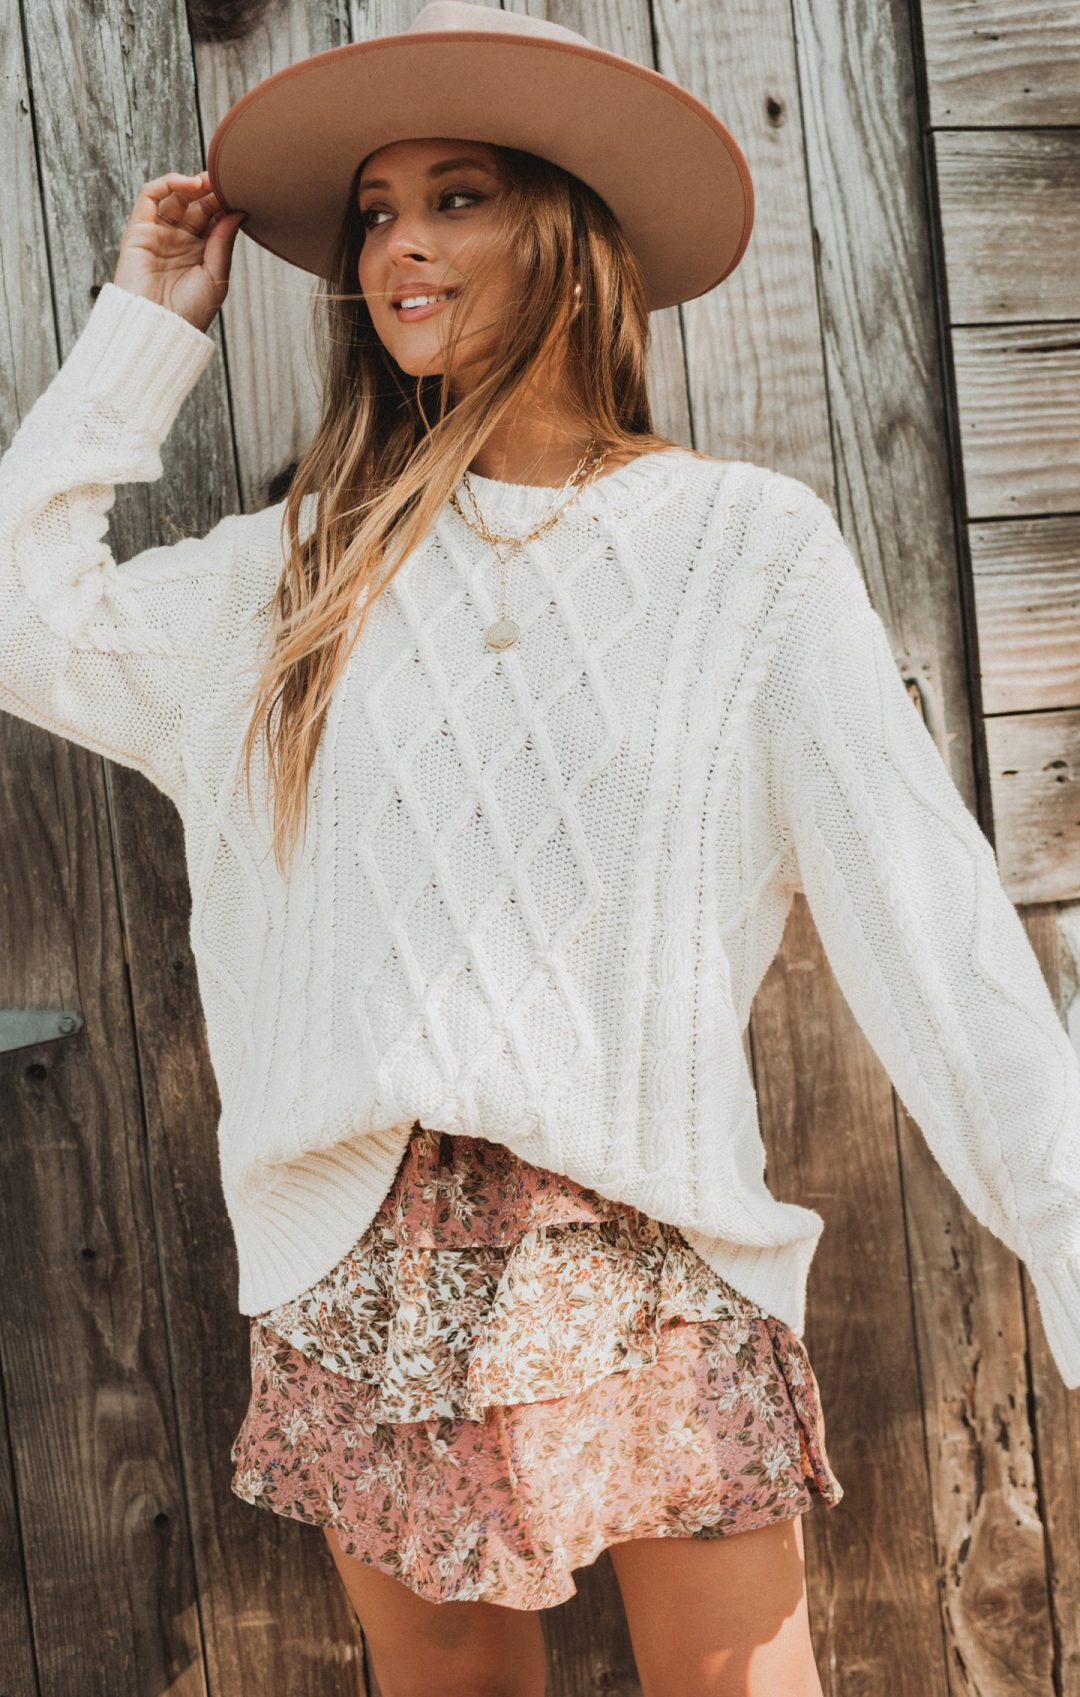 Cute fall outfit with white sweater and floral skirt